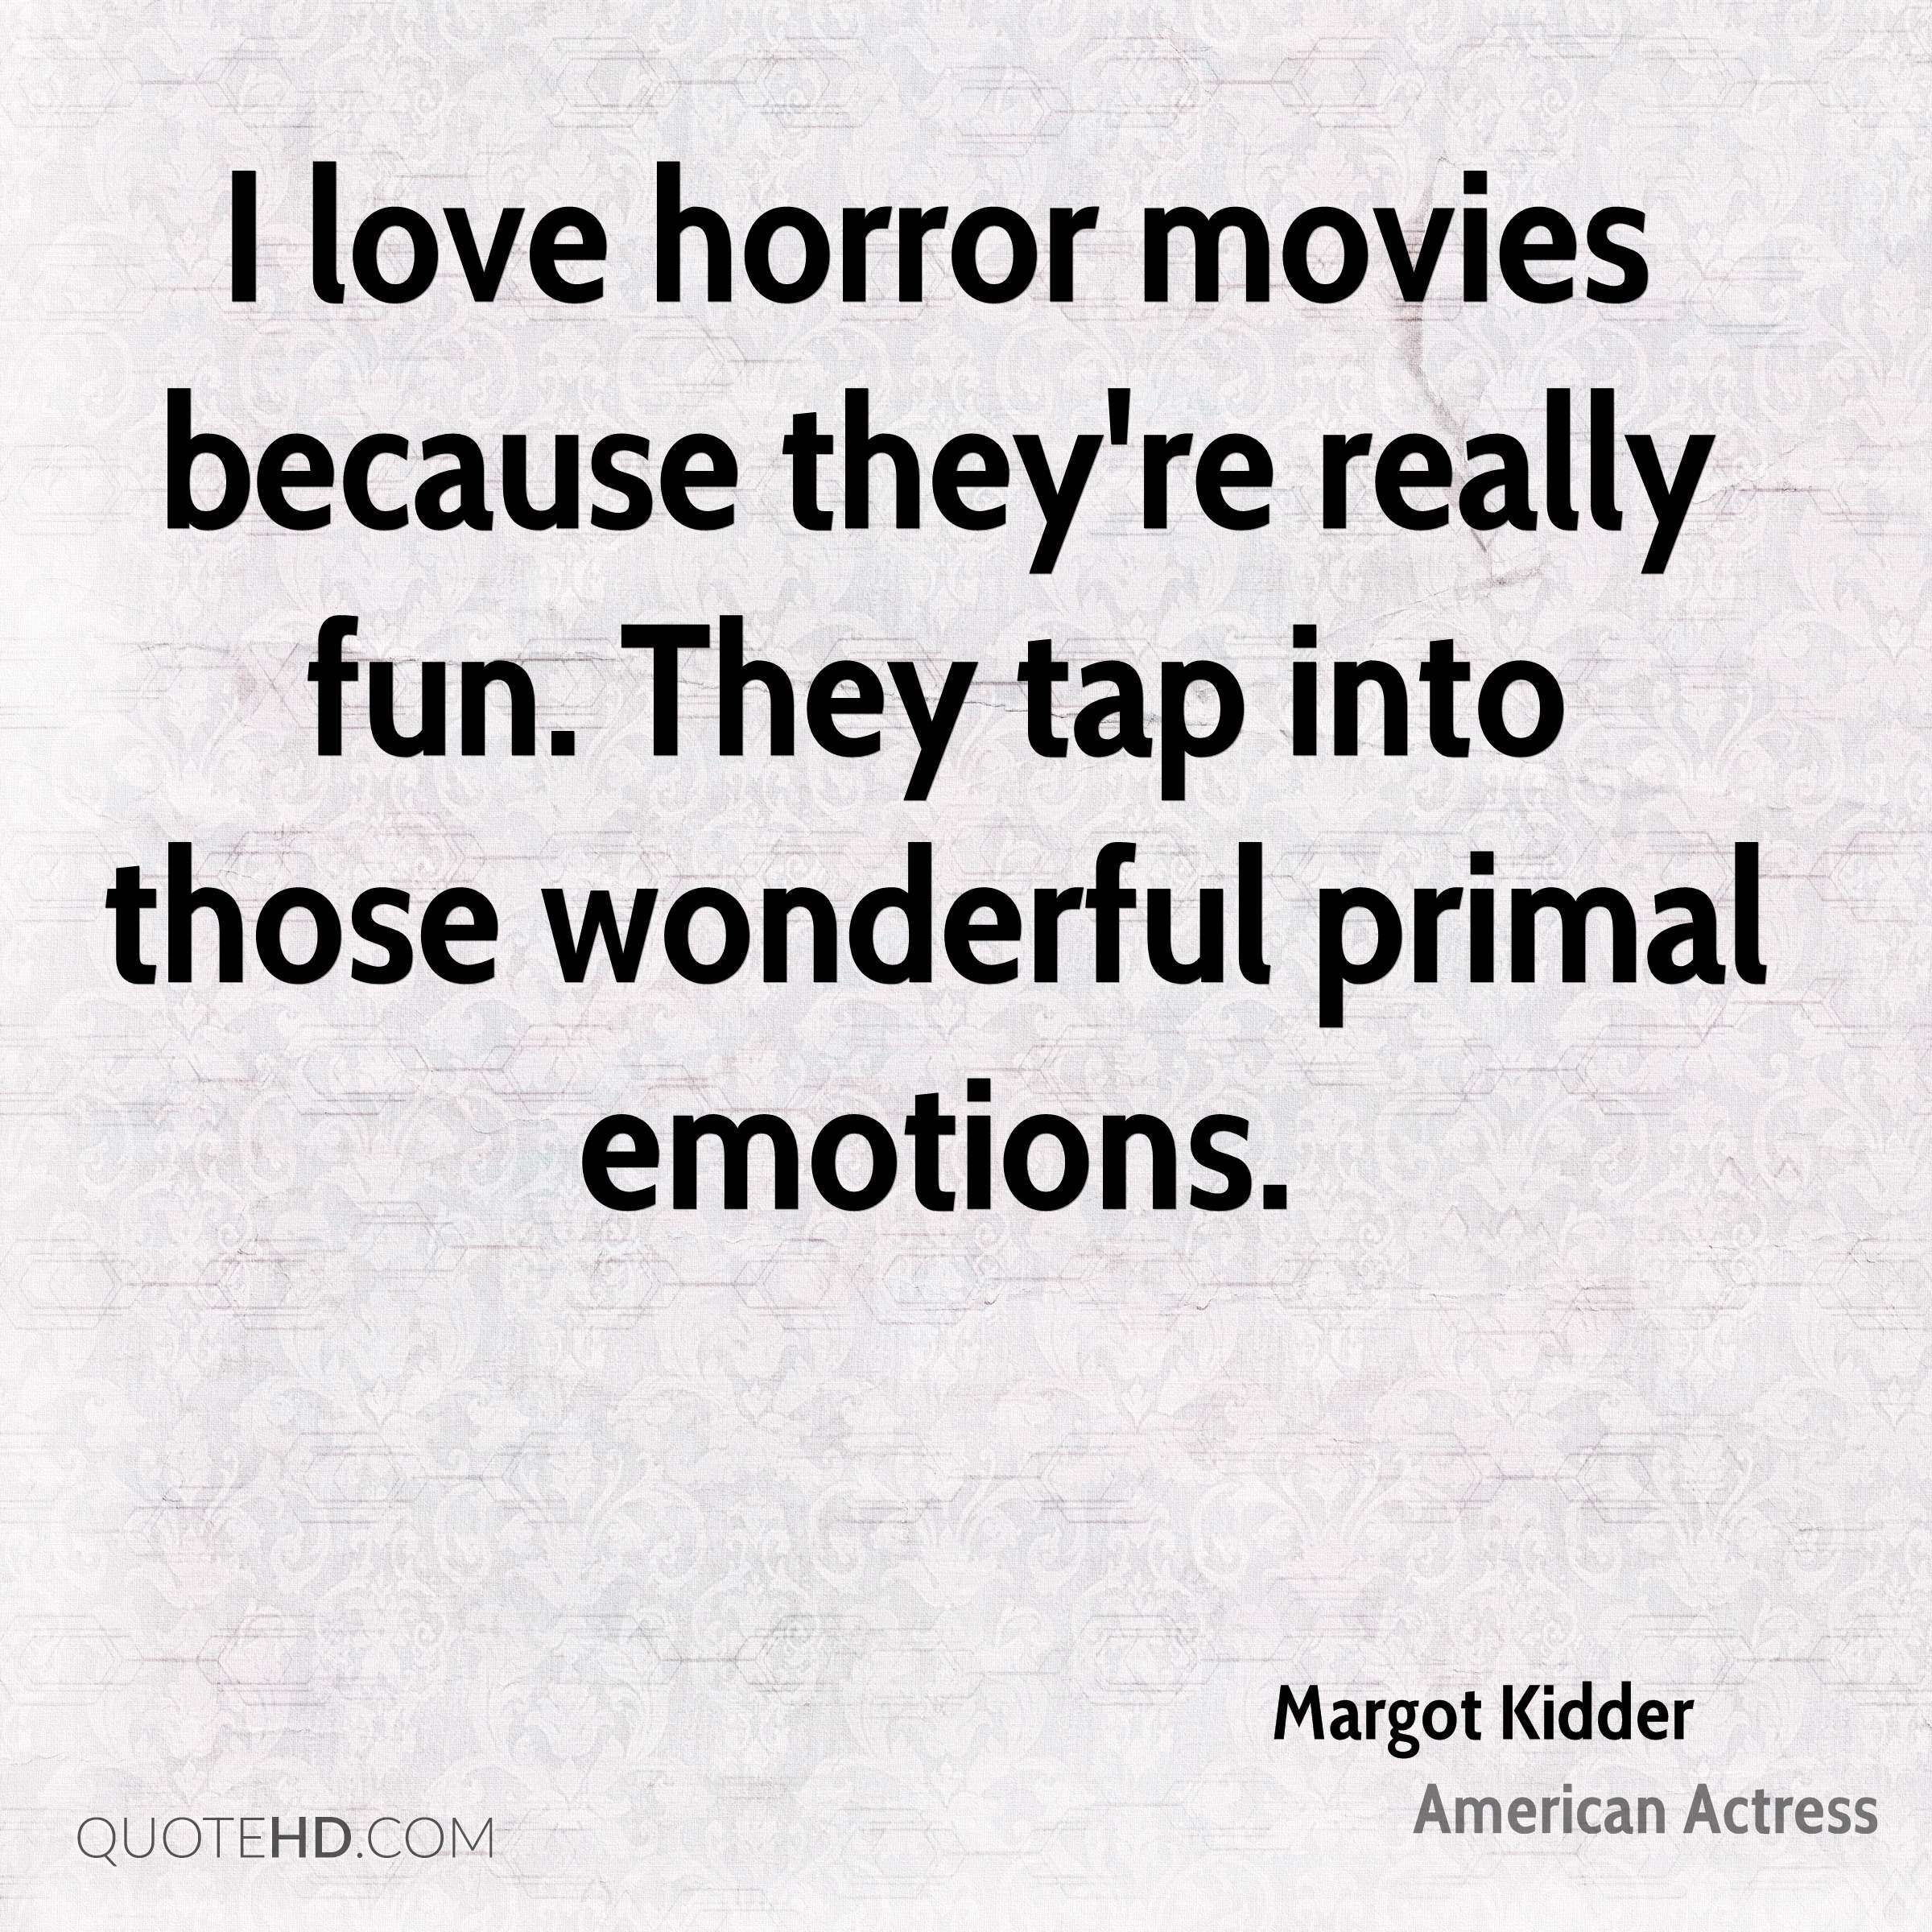 I love horror movies because they're really fun. They tap into those wonderful primal emotions.